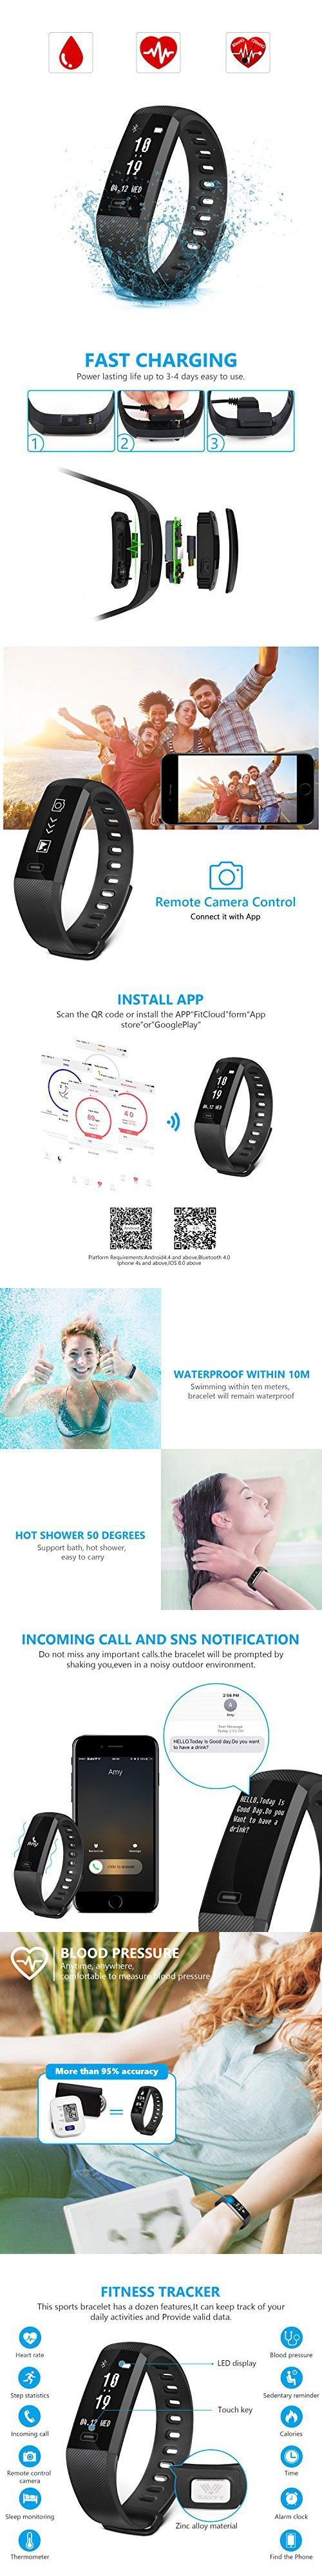 SAVFY Fitness Tracker, Blood Pressure & Oxygen Monitor Heart Rate Monitor IP67 Waterproof Activity Wristband for Android IOS